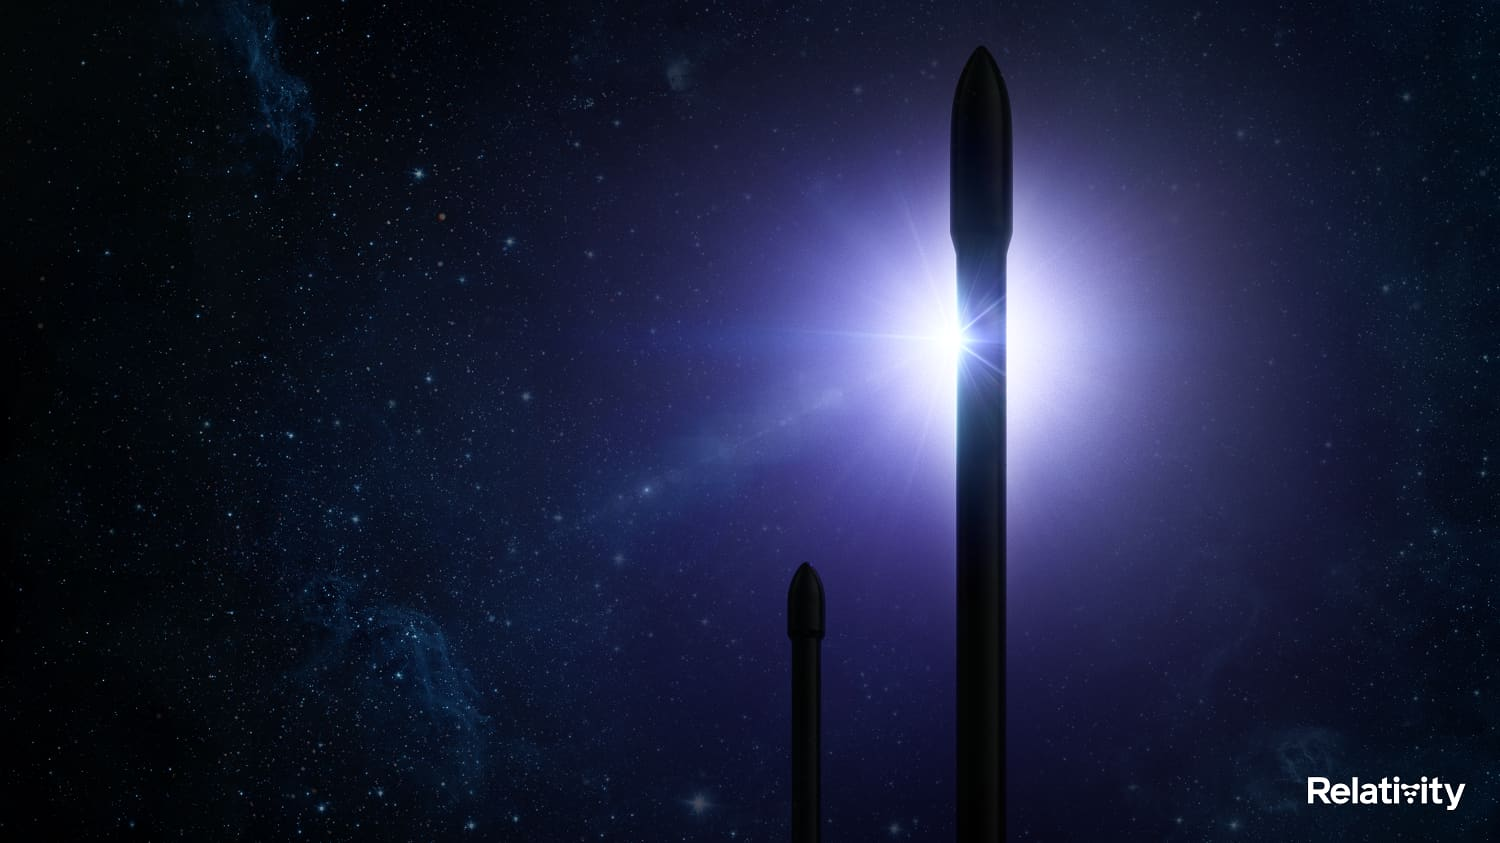 Relativity Area unveils a reusable, 3D-printed rocket to compete with SpaceX's Falcon 9